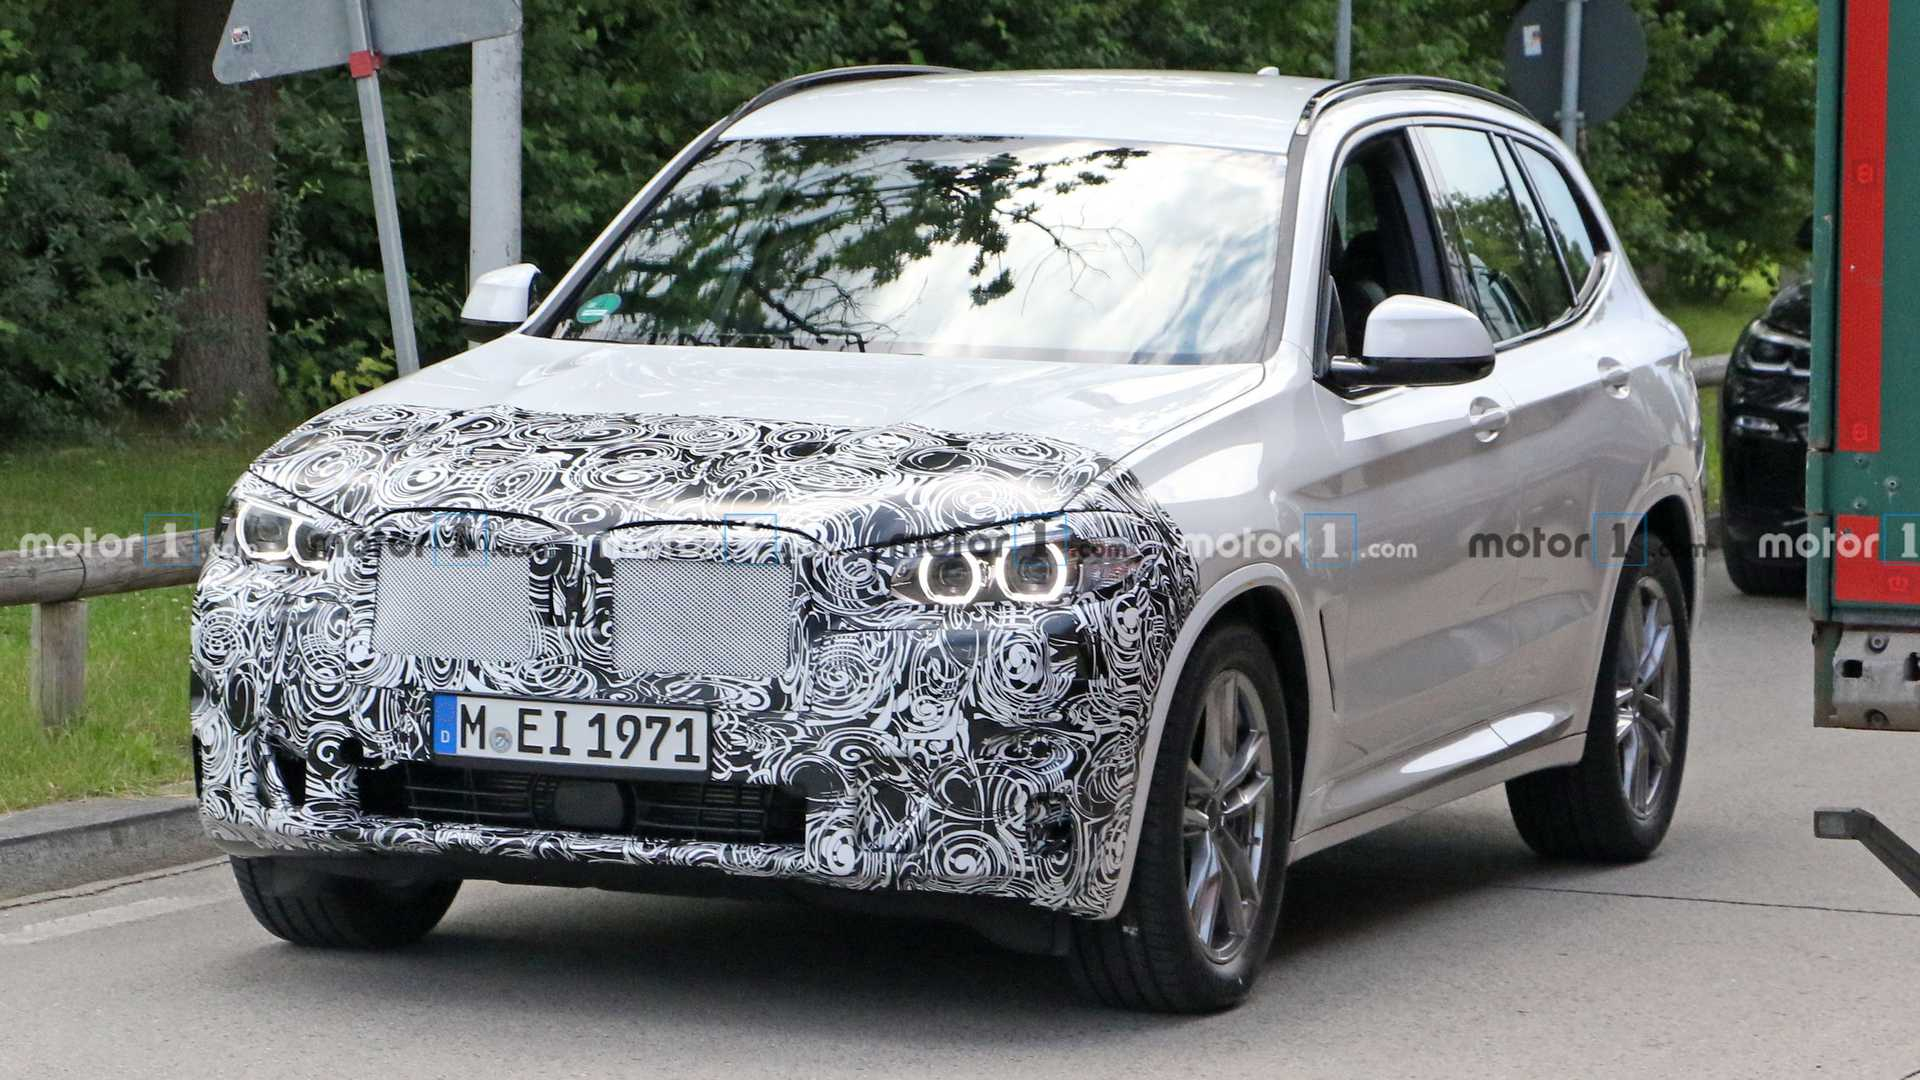 2022 BMW X3 Facelift Spied For The First Time